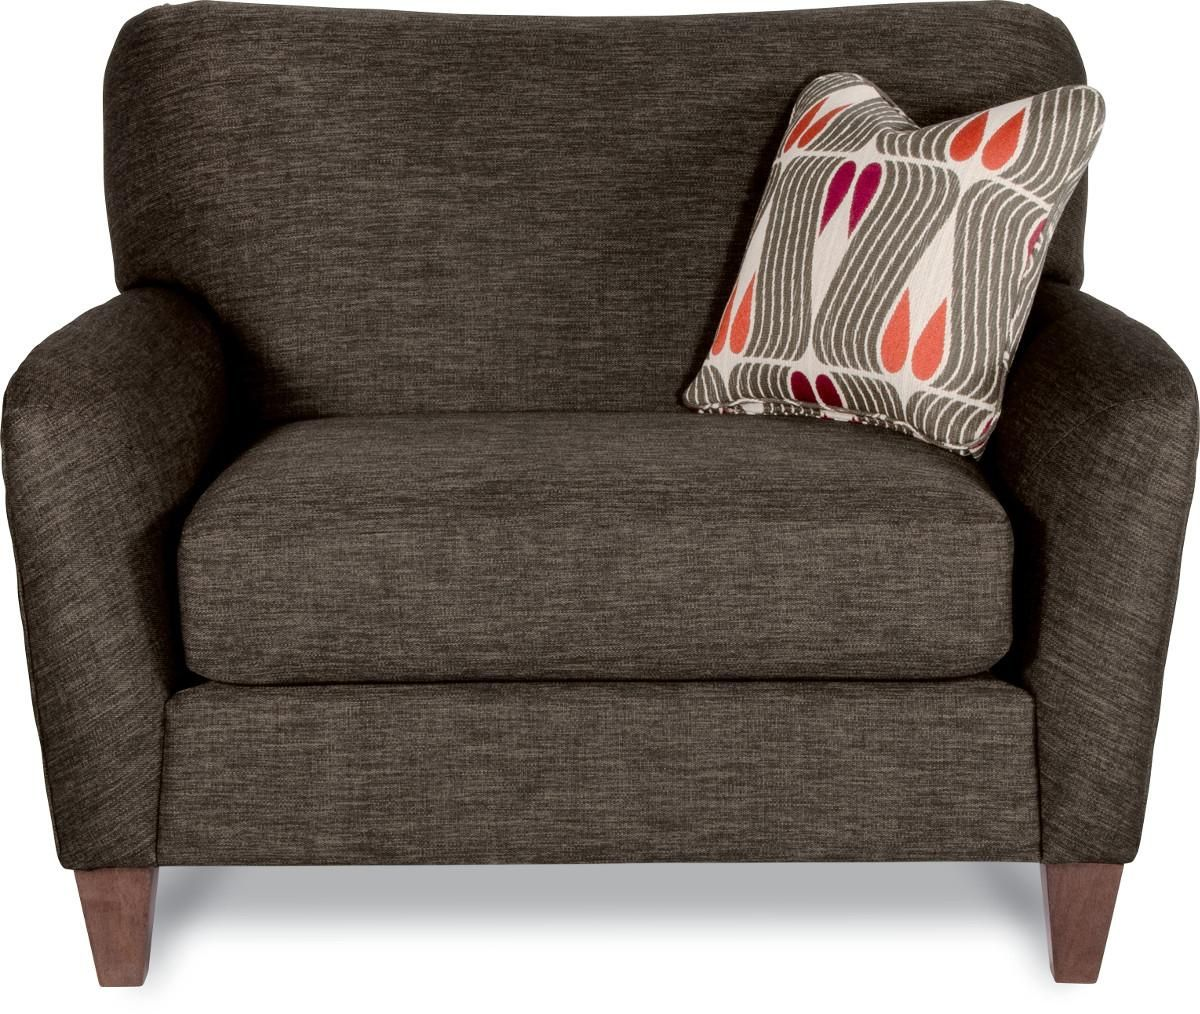 Dolce premier chairandahalf by lazboy chair and a